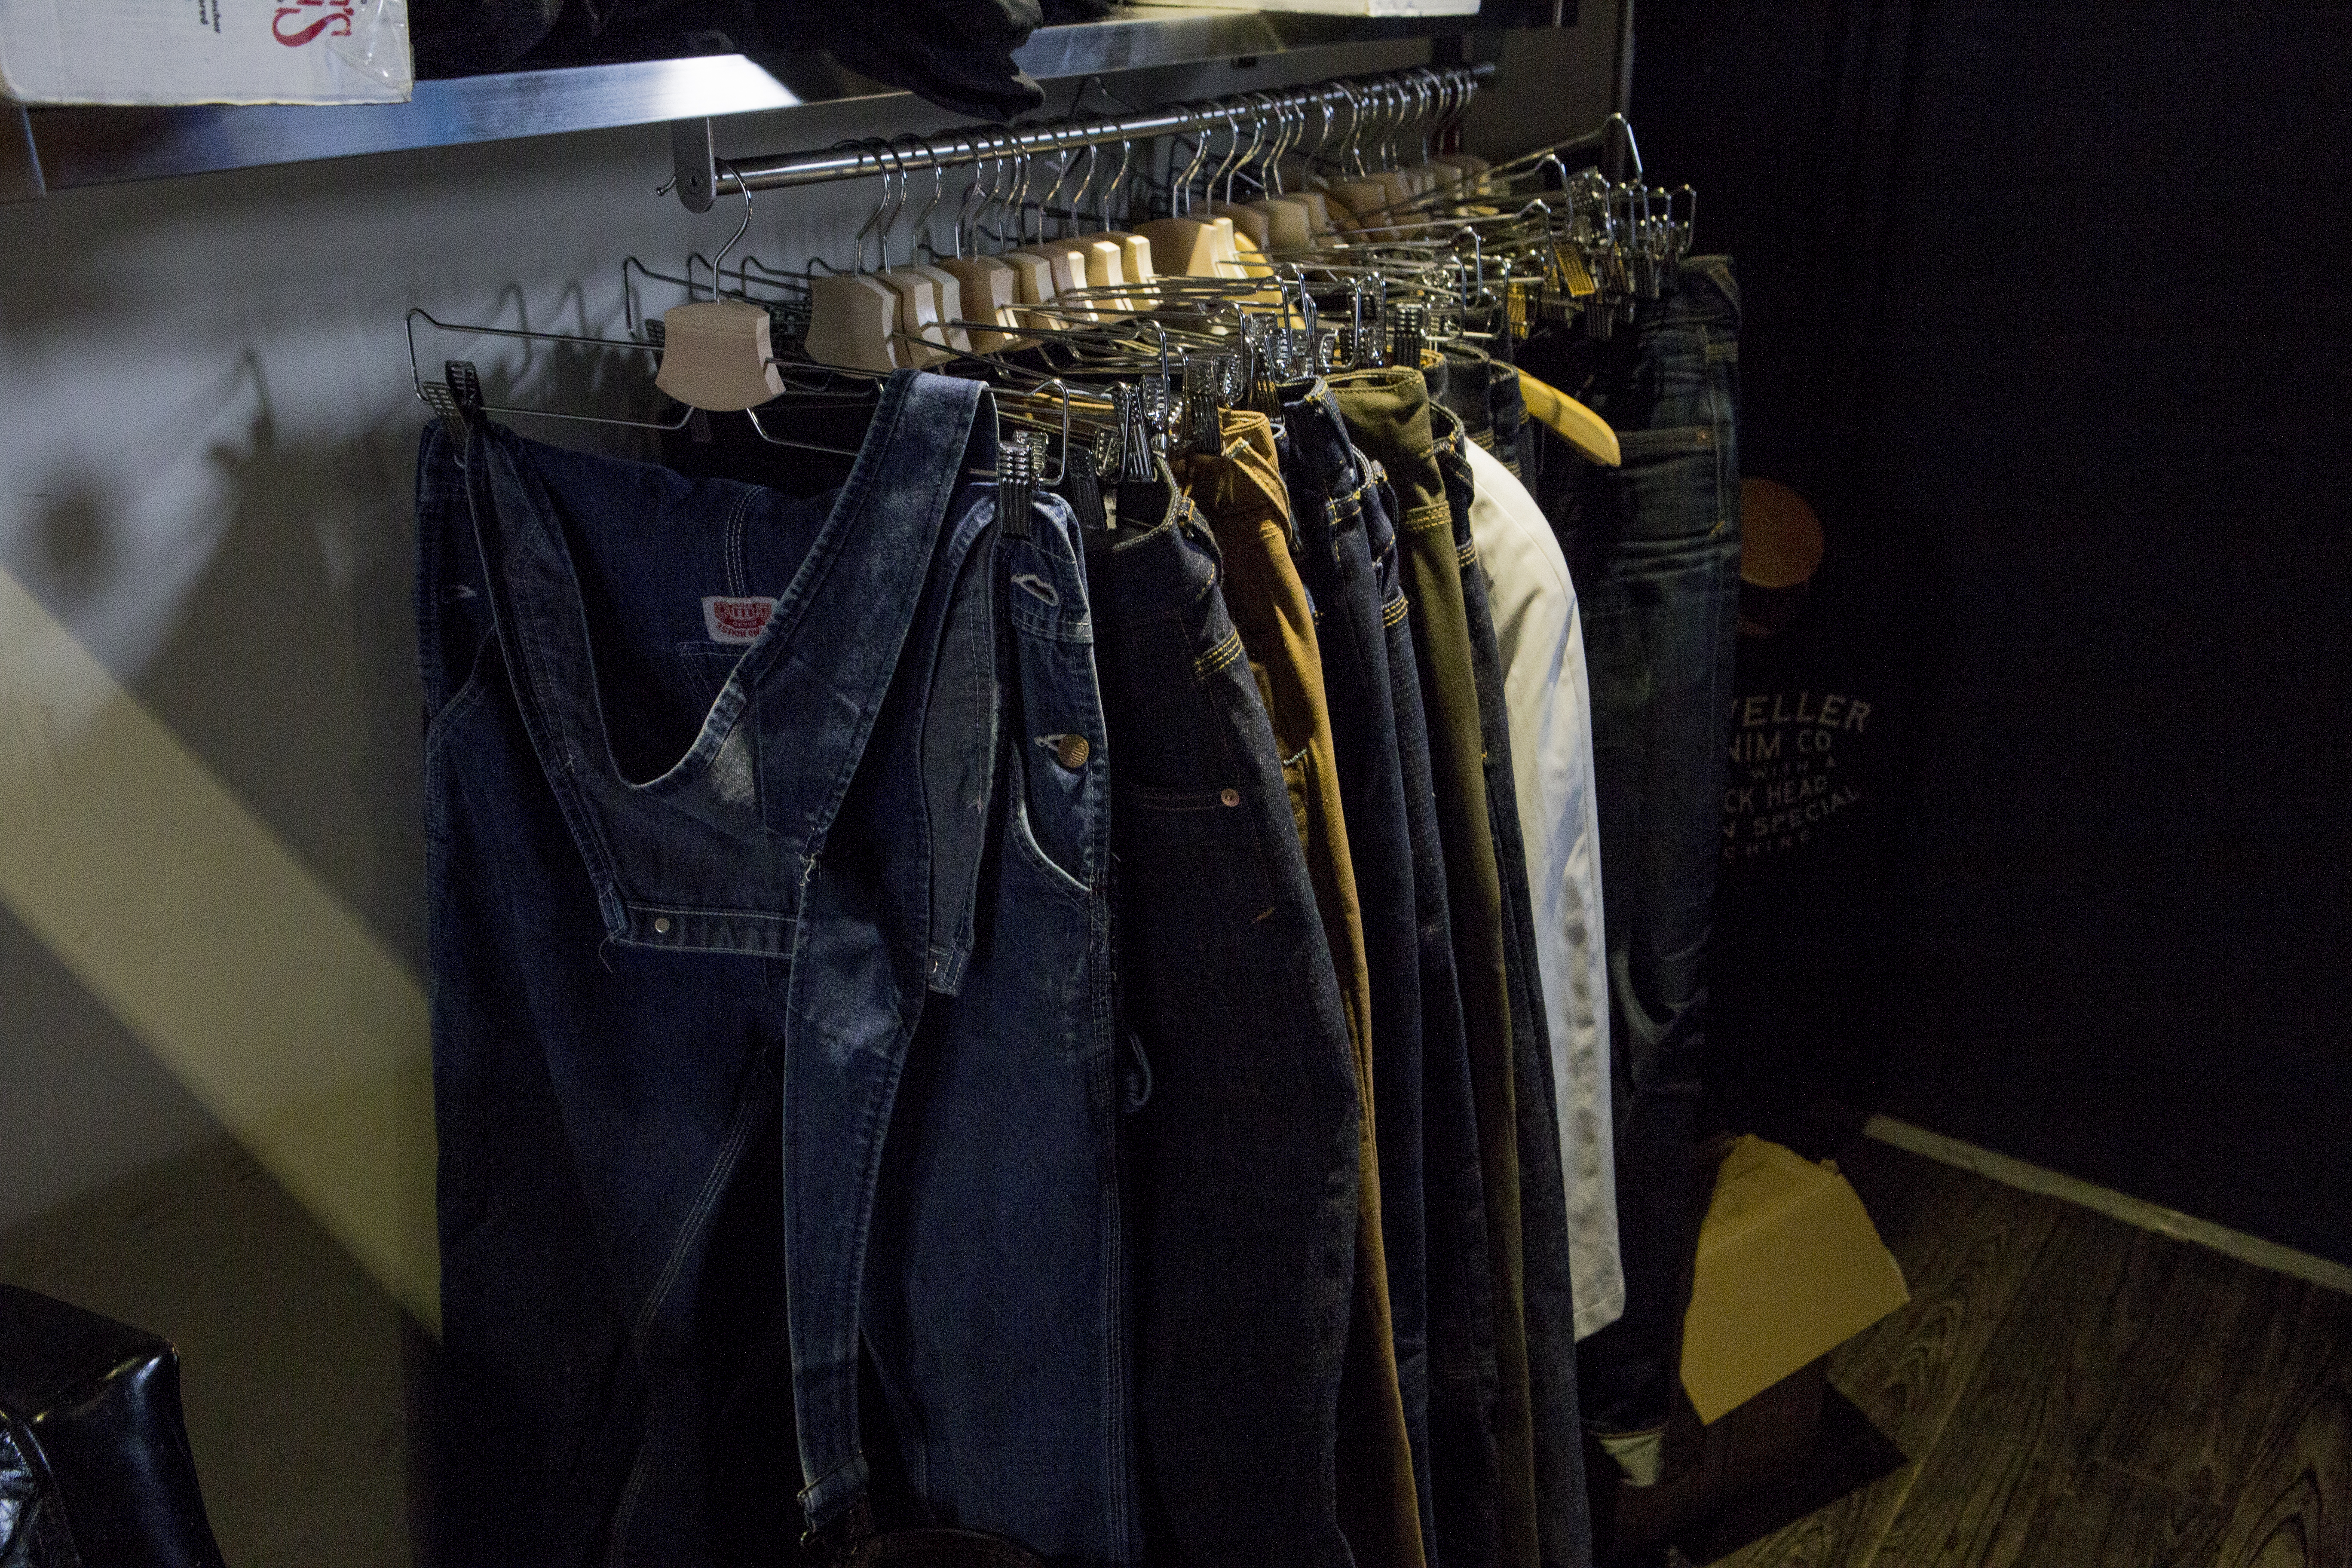 Ready to wear denim jeans.